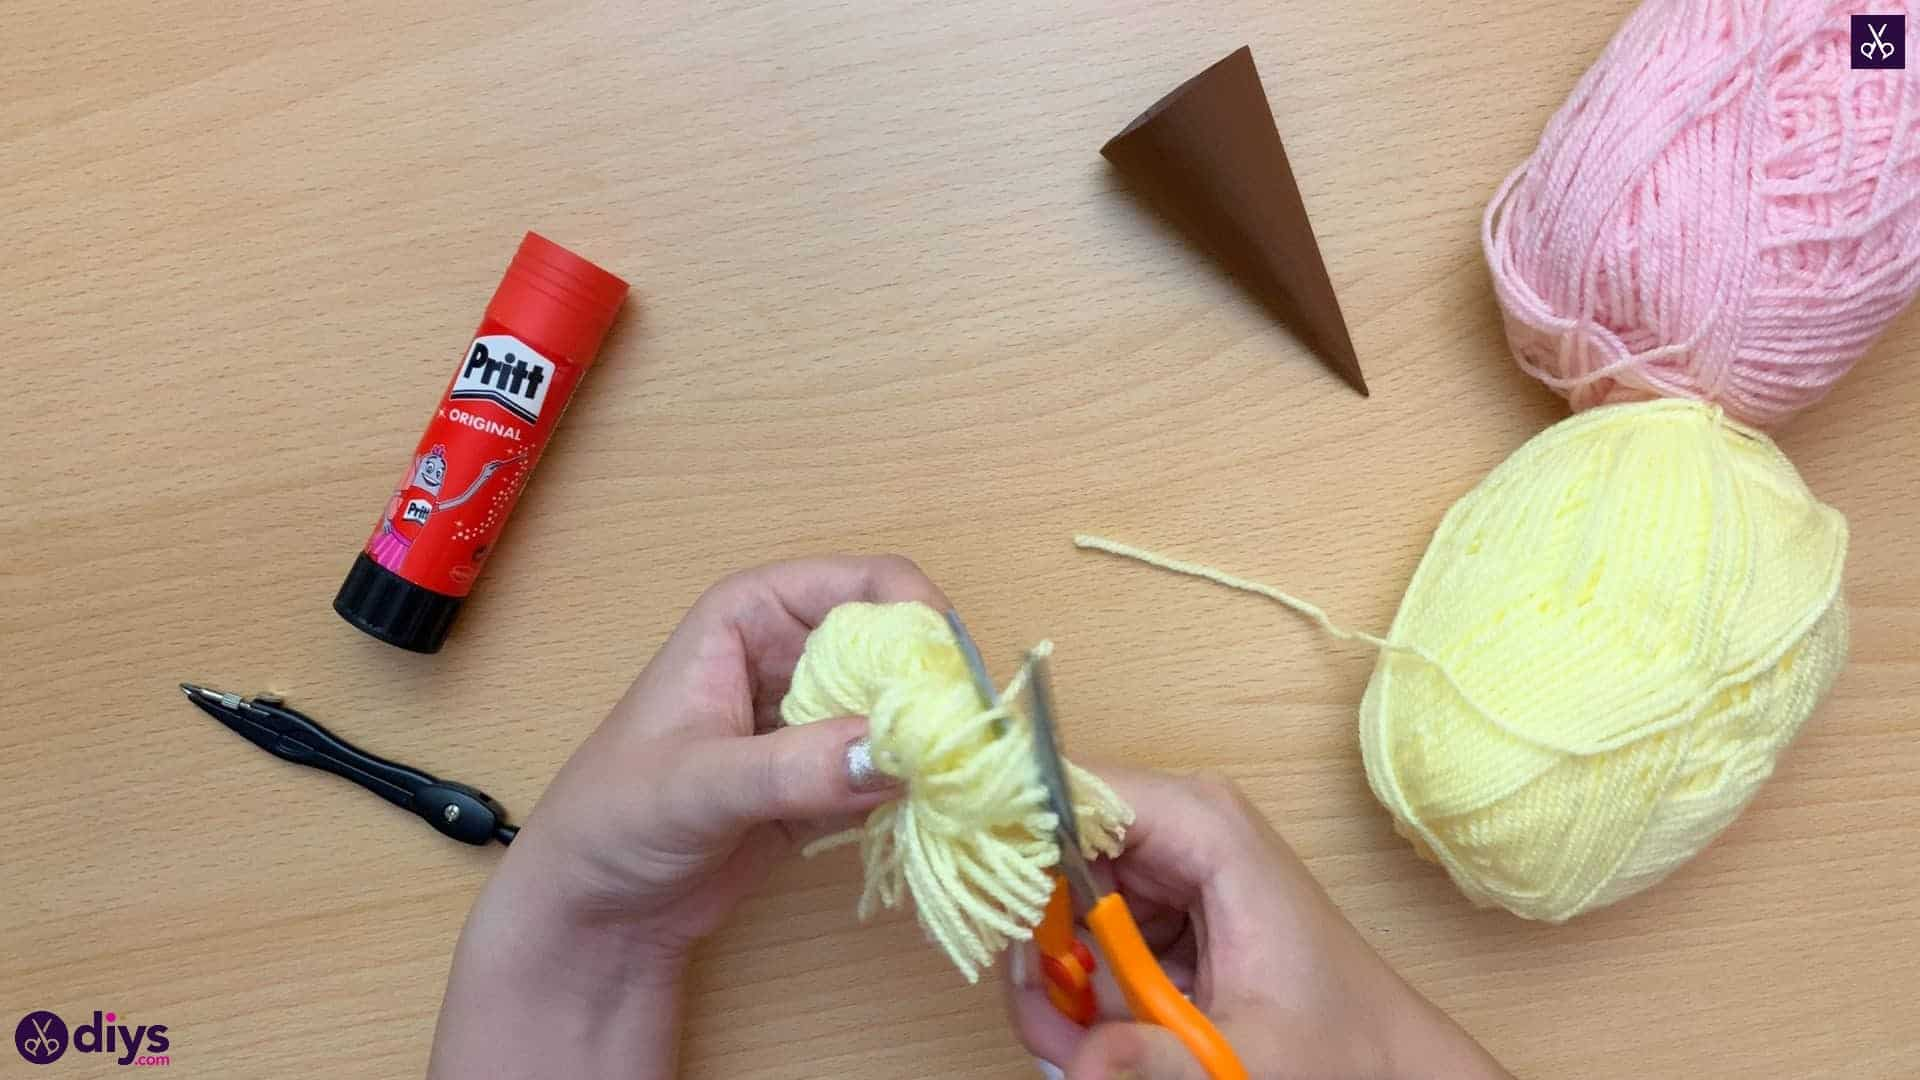 How to make an ice cream pom pom step 6